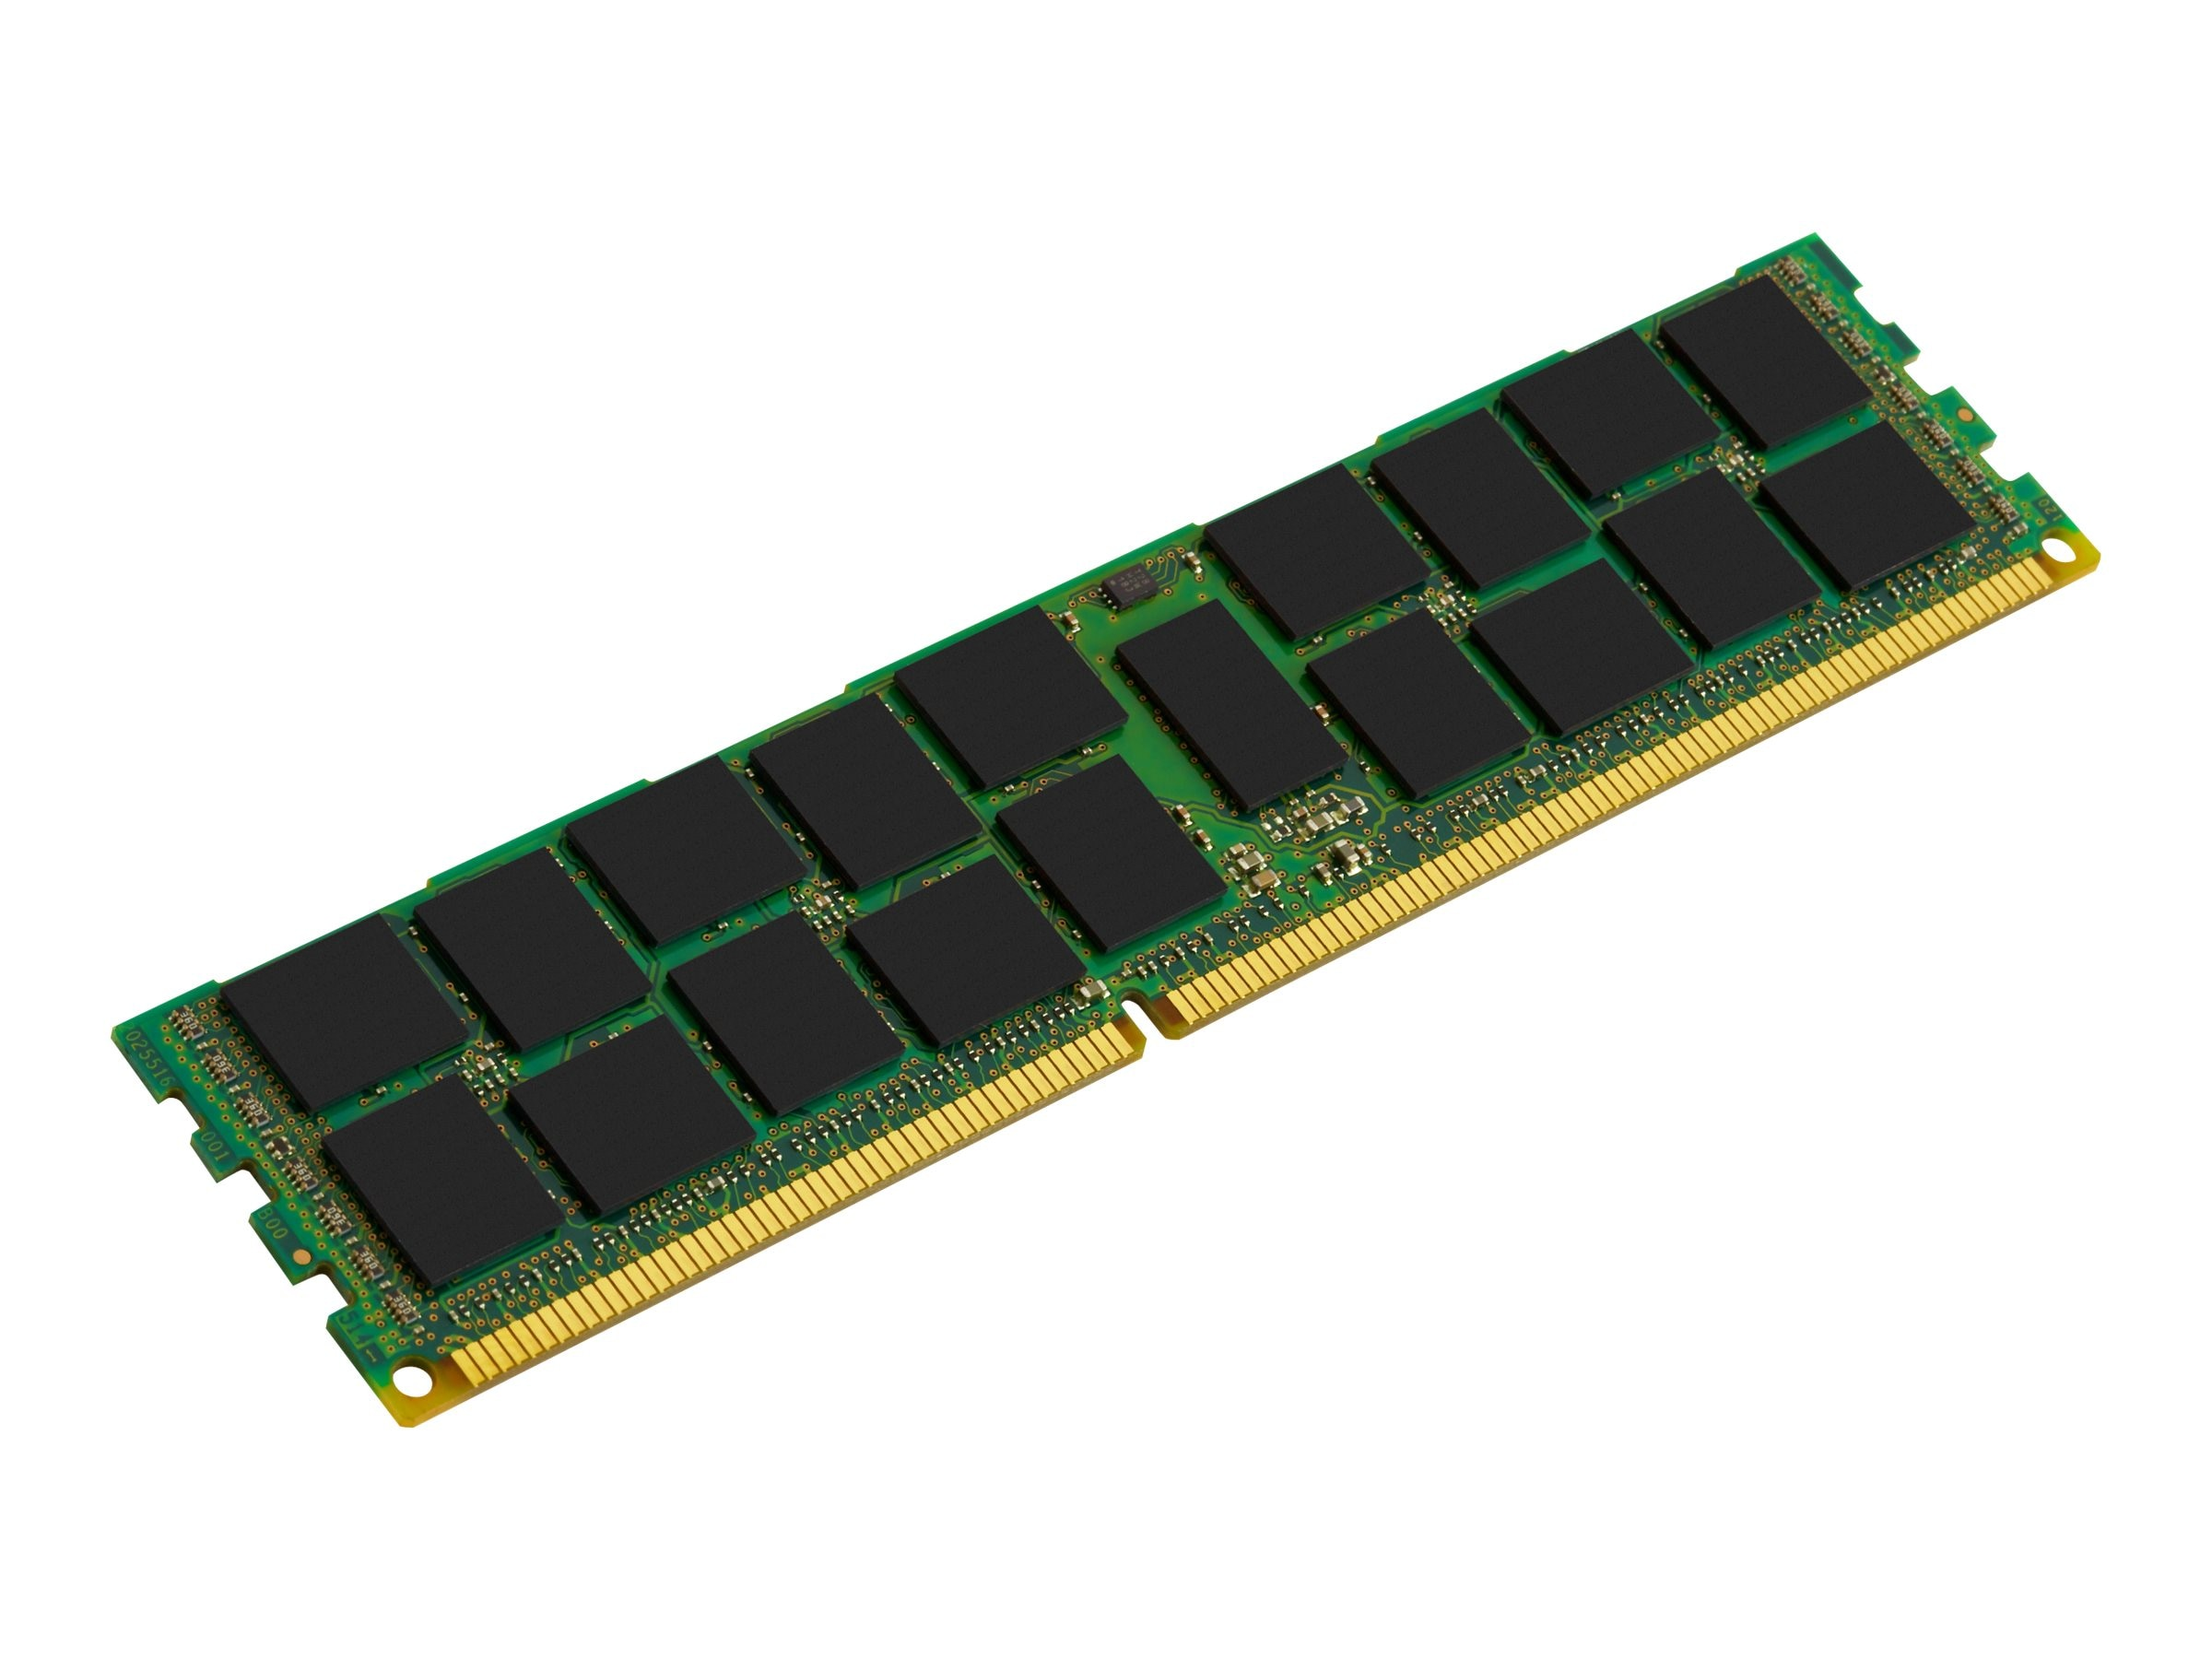 Kingston KTD-PE316LV/16G Image 1